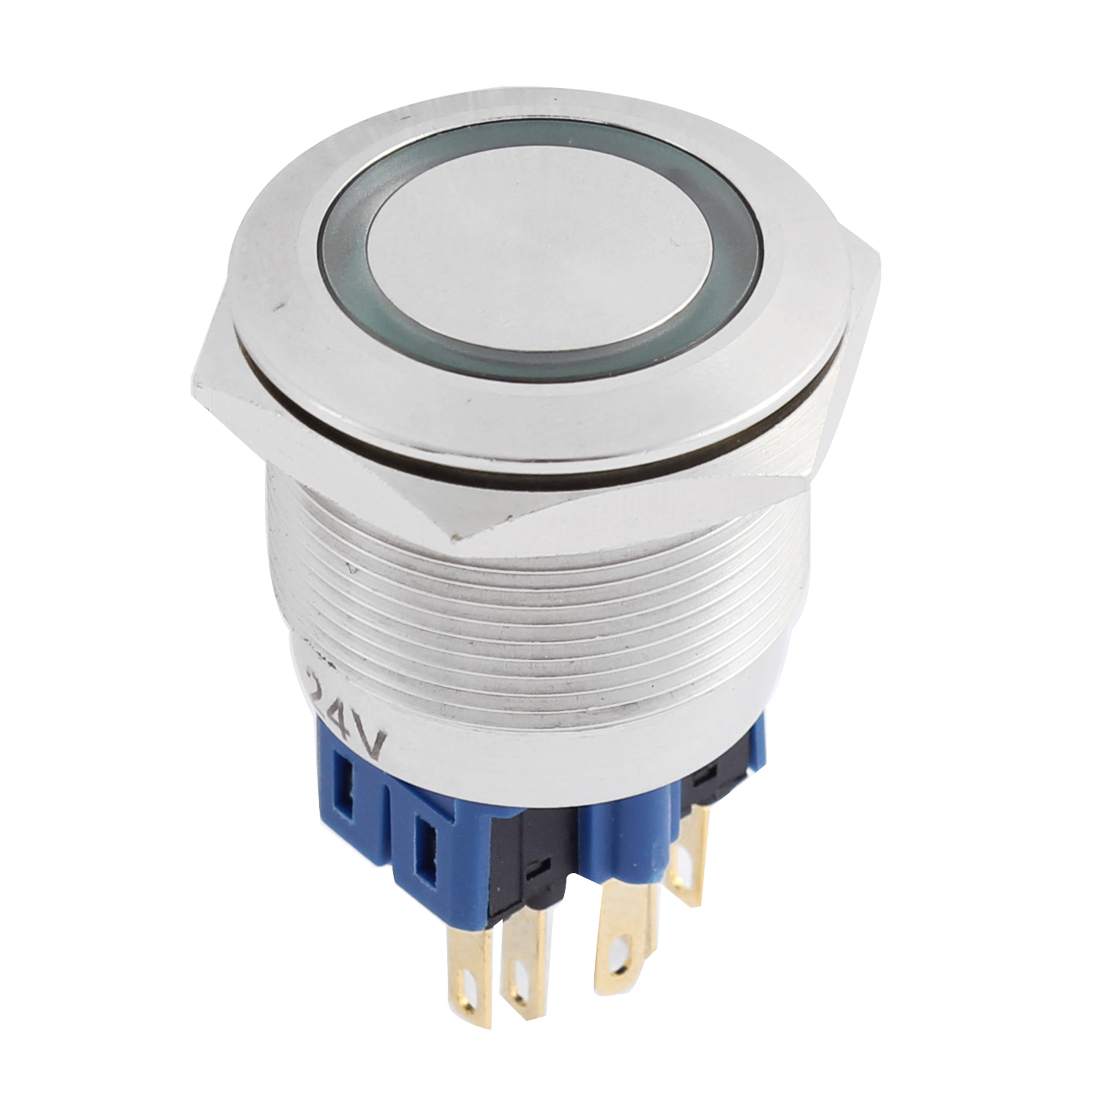 AC 250V 18mm Blue LED Light 25mm Mounted Thread 6 Pins DPST NO/NC Latching Push Button Switch